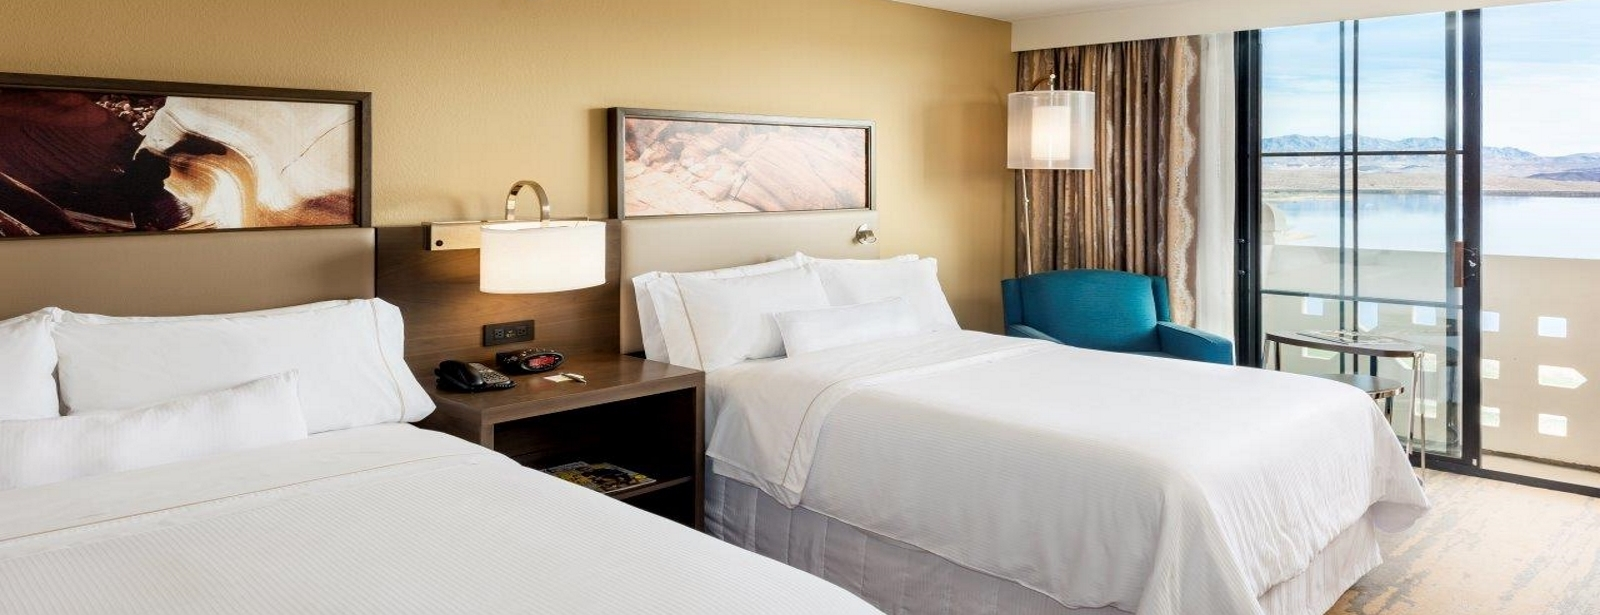 Hotels in Lake Las Vegas - Deluxe & Premiere Rooms